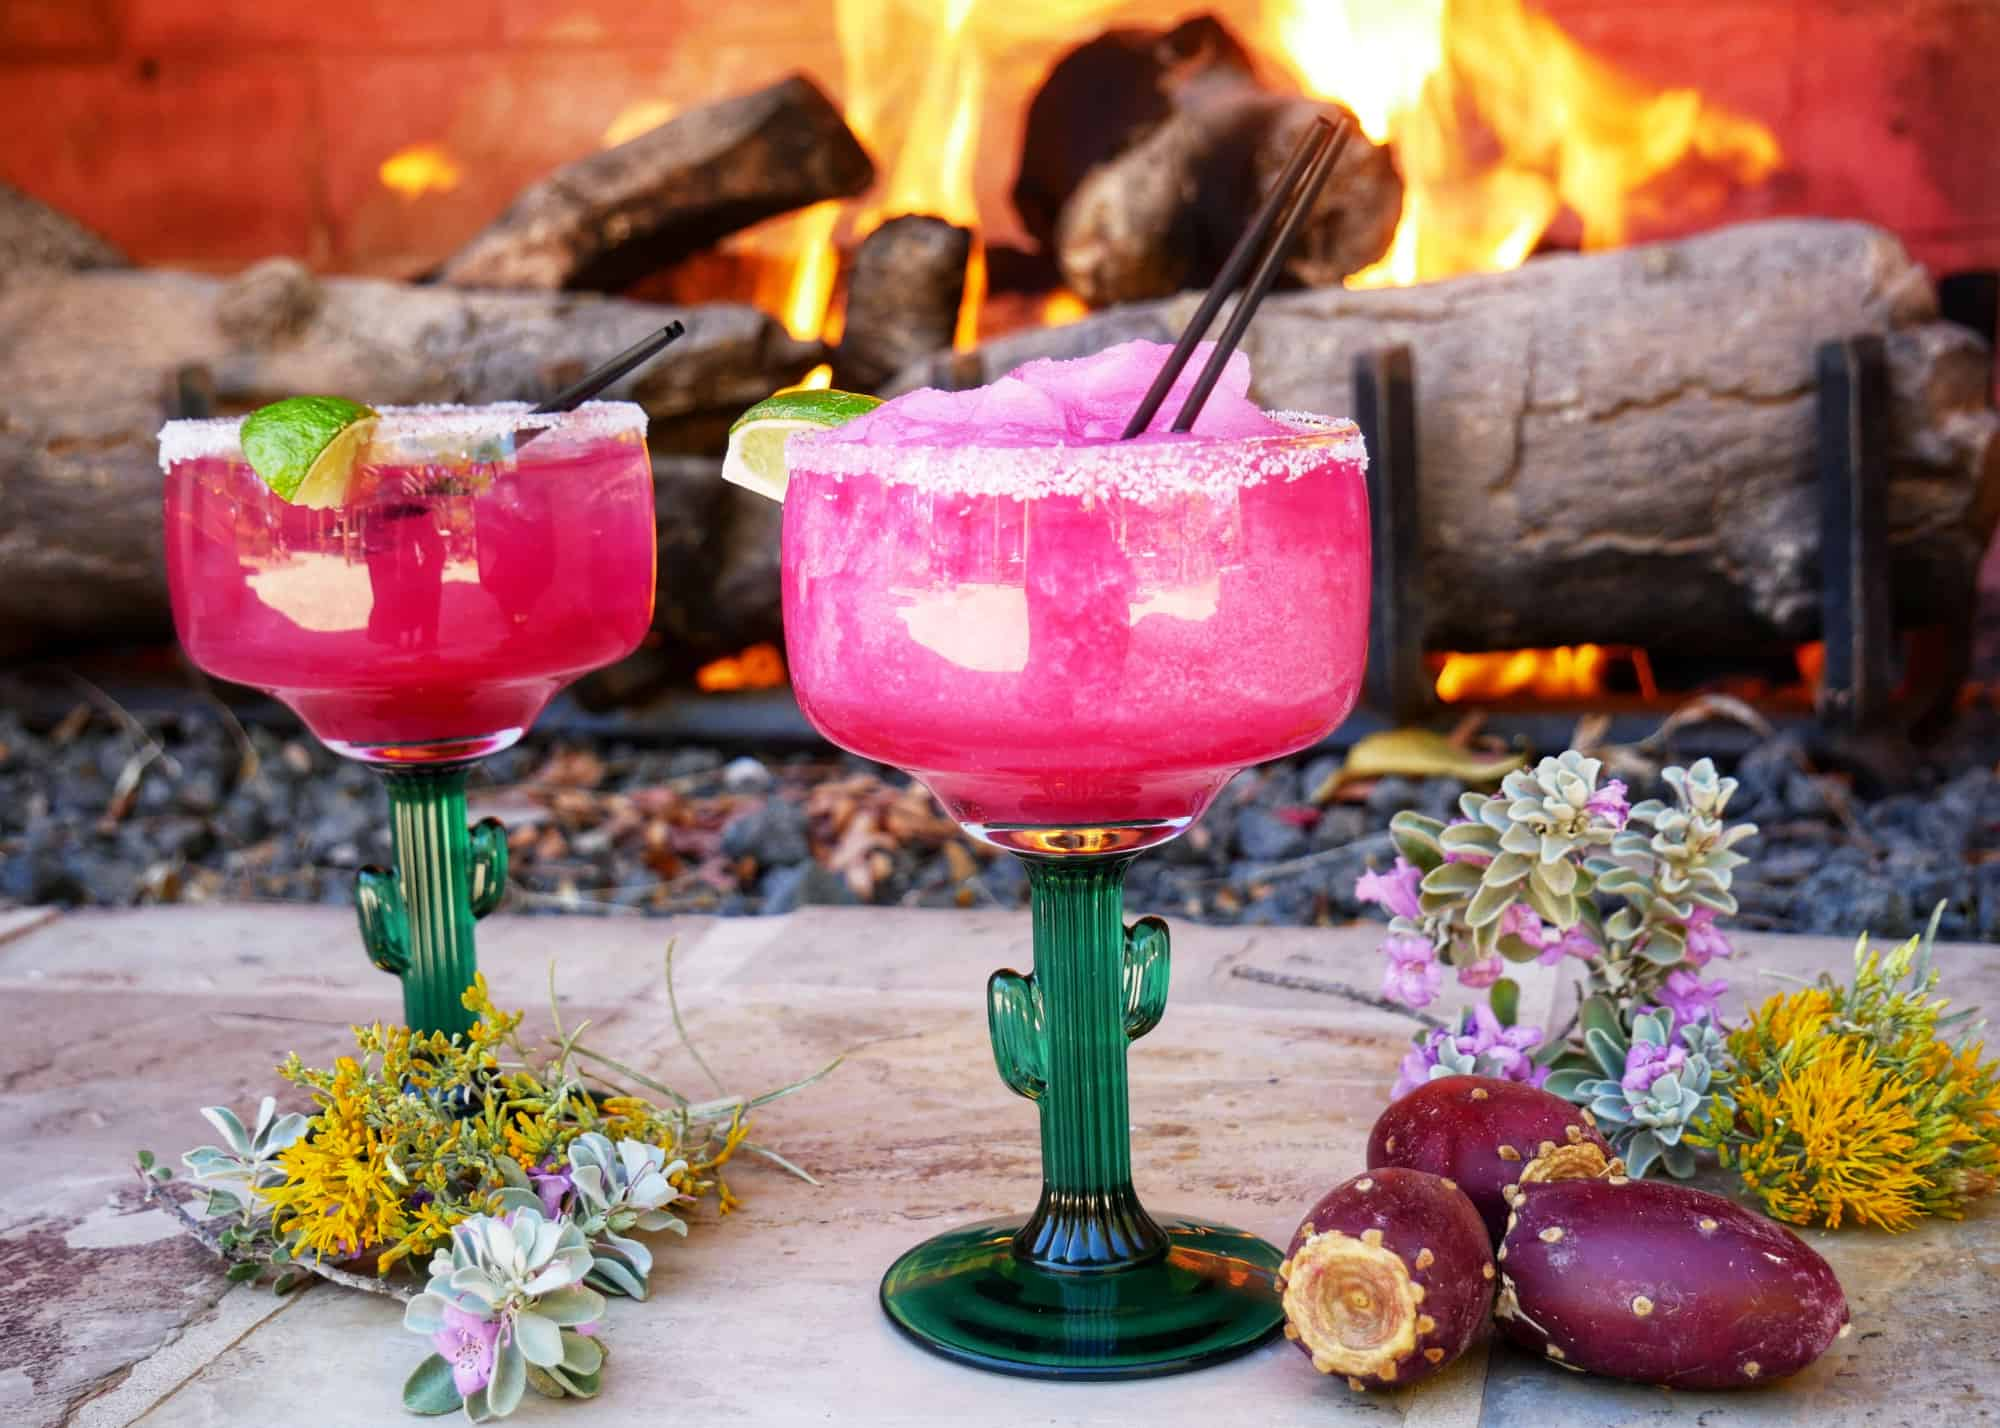 15 of the Best [And Most Creative] Margarita Recipes